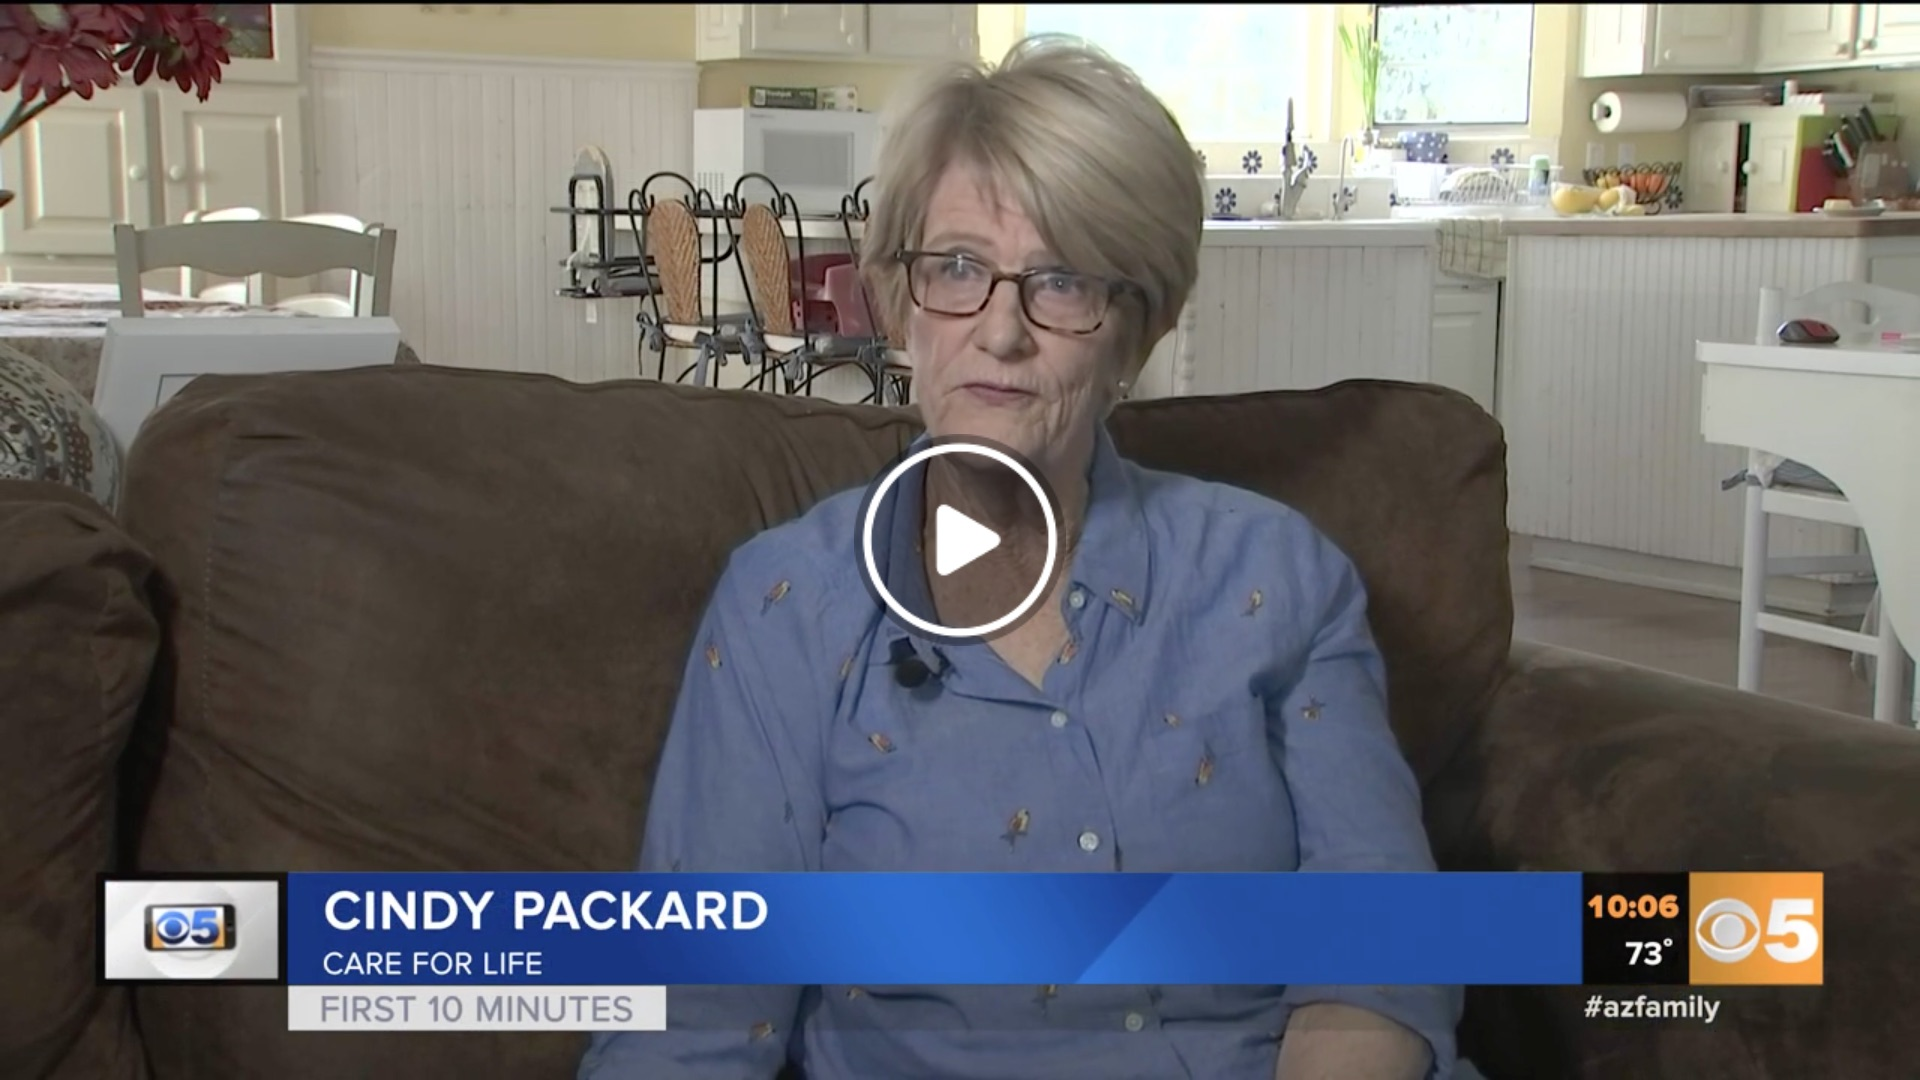 CBS News Phoenix features Care for Life